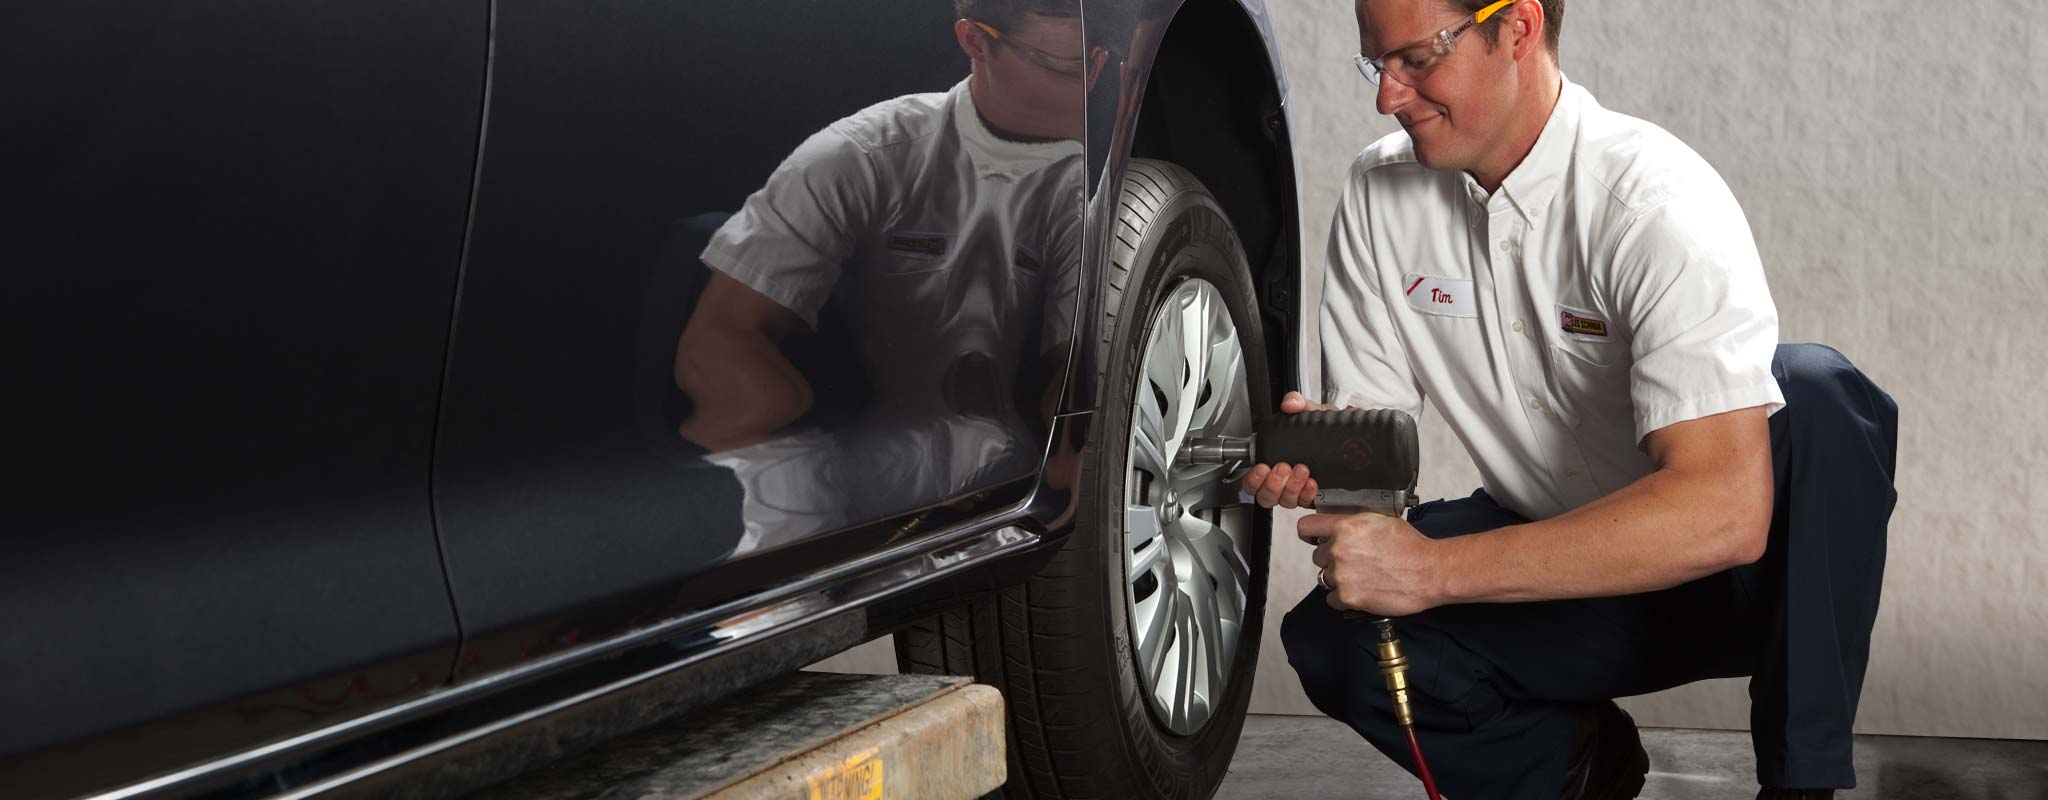 A tire technician using an air gun to remove lug nuts from a tire.